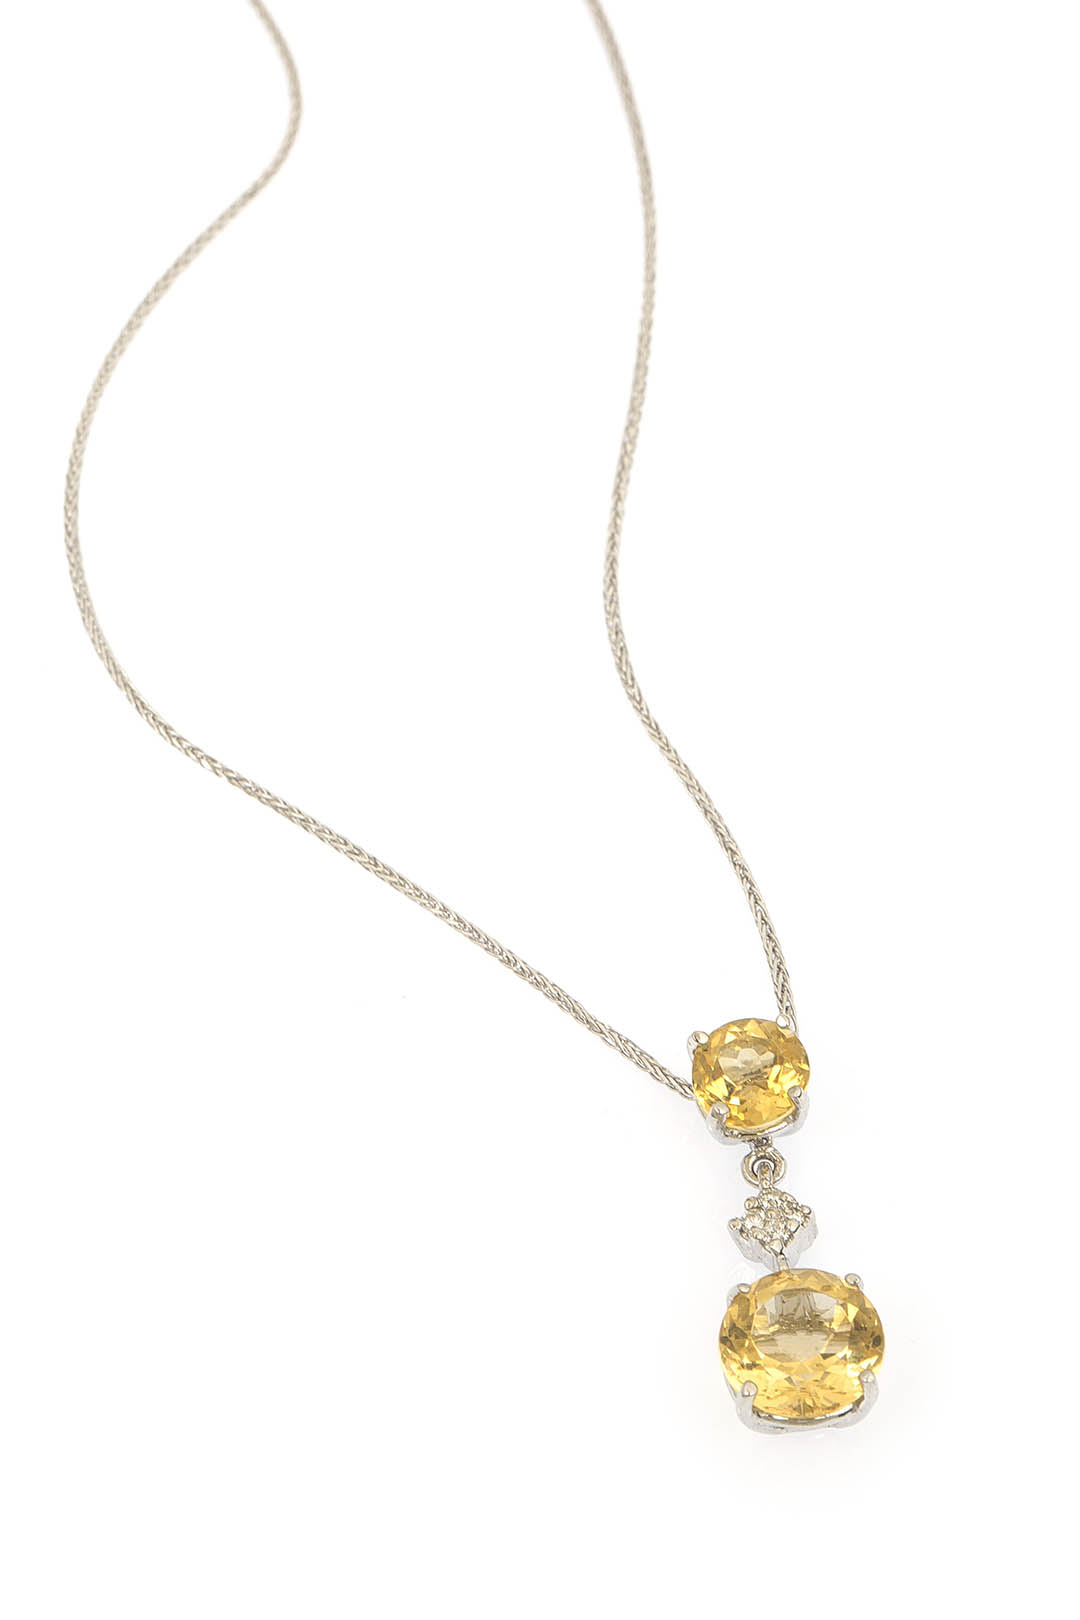 GRAND CITRIN AND DIAMOND NECKLACE